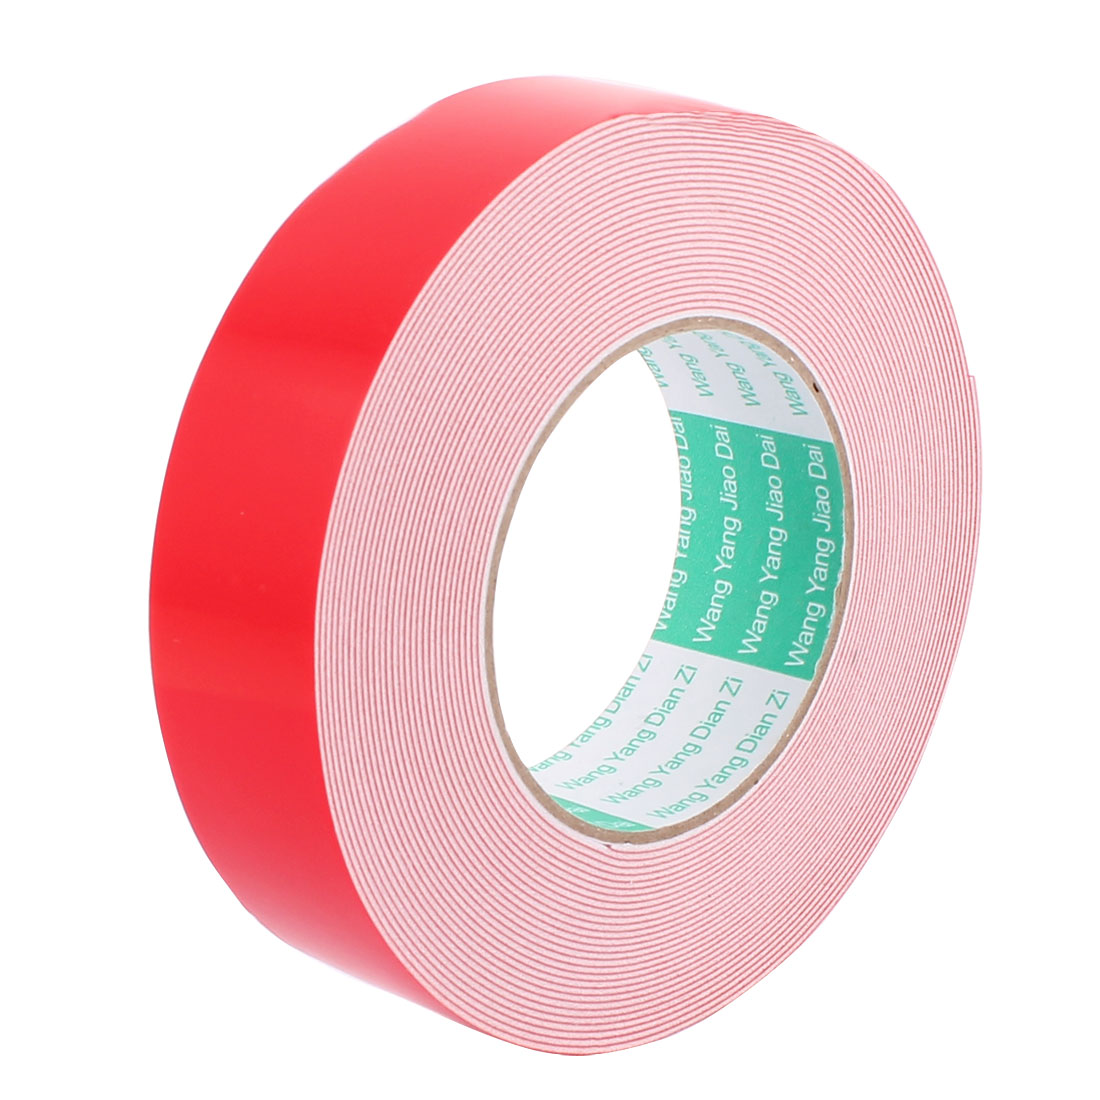 40MM Width 10M Length 1MM Thick White Dual Sided Waterproof Sponge Tape for Car